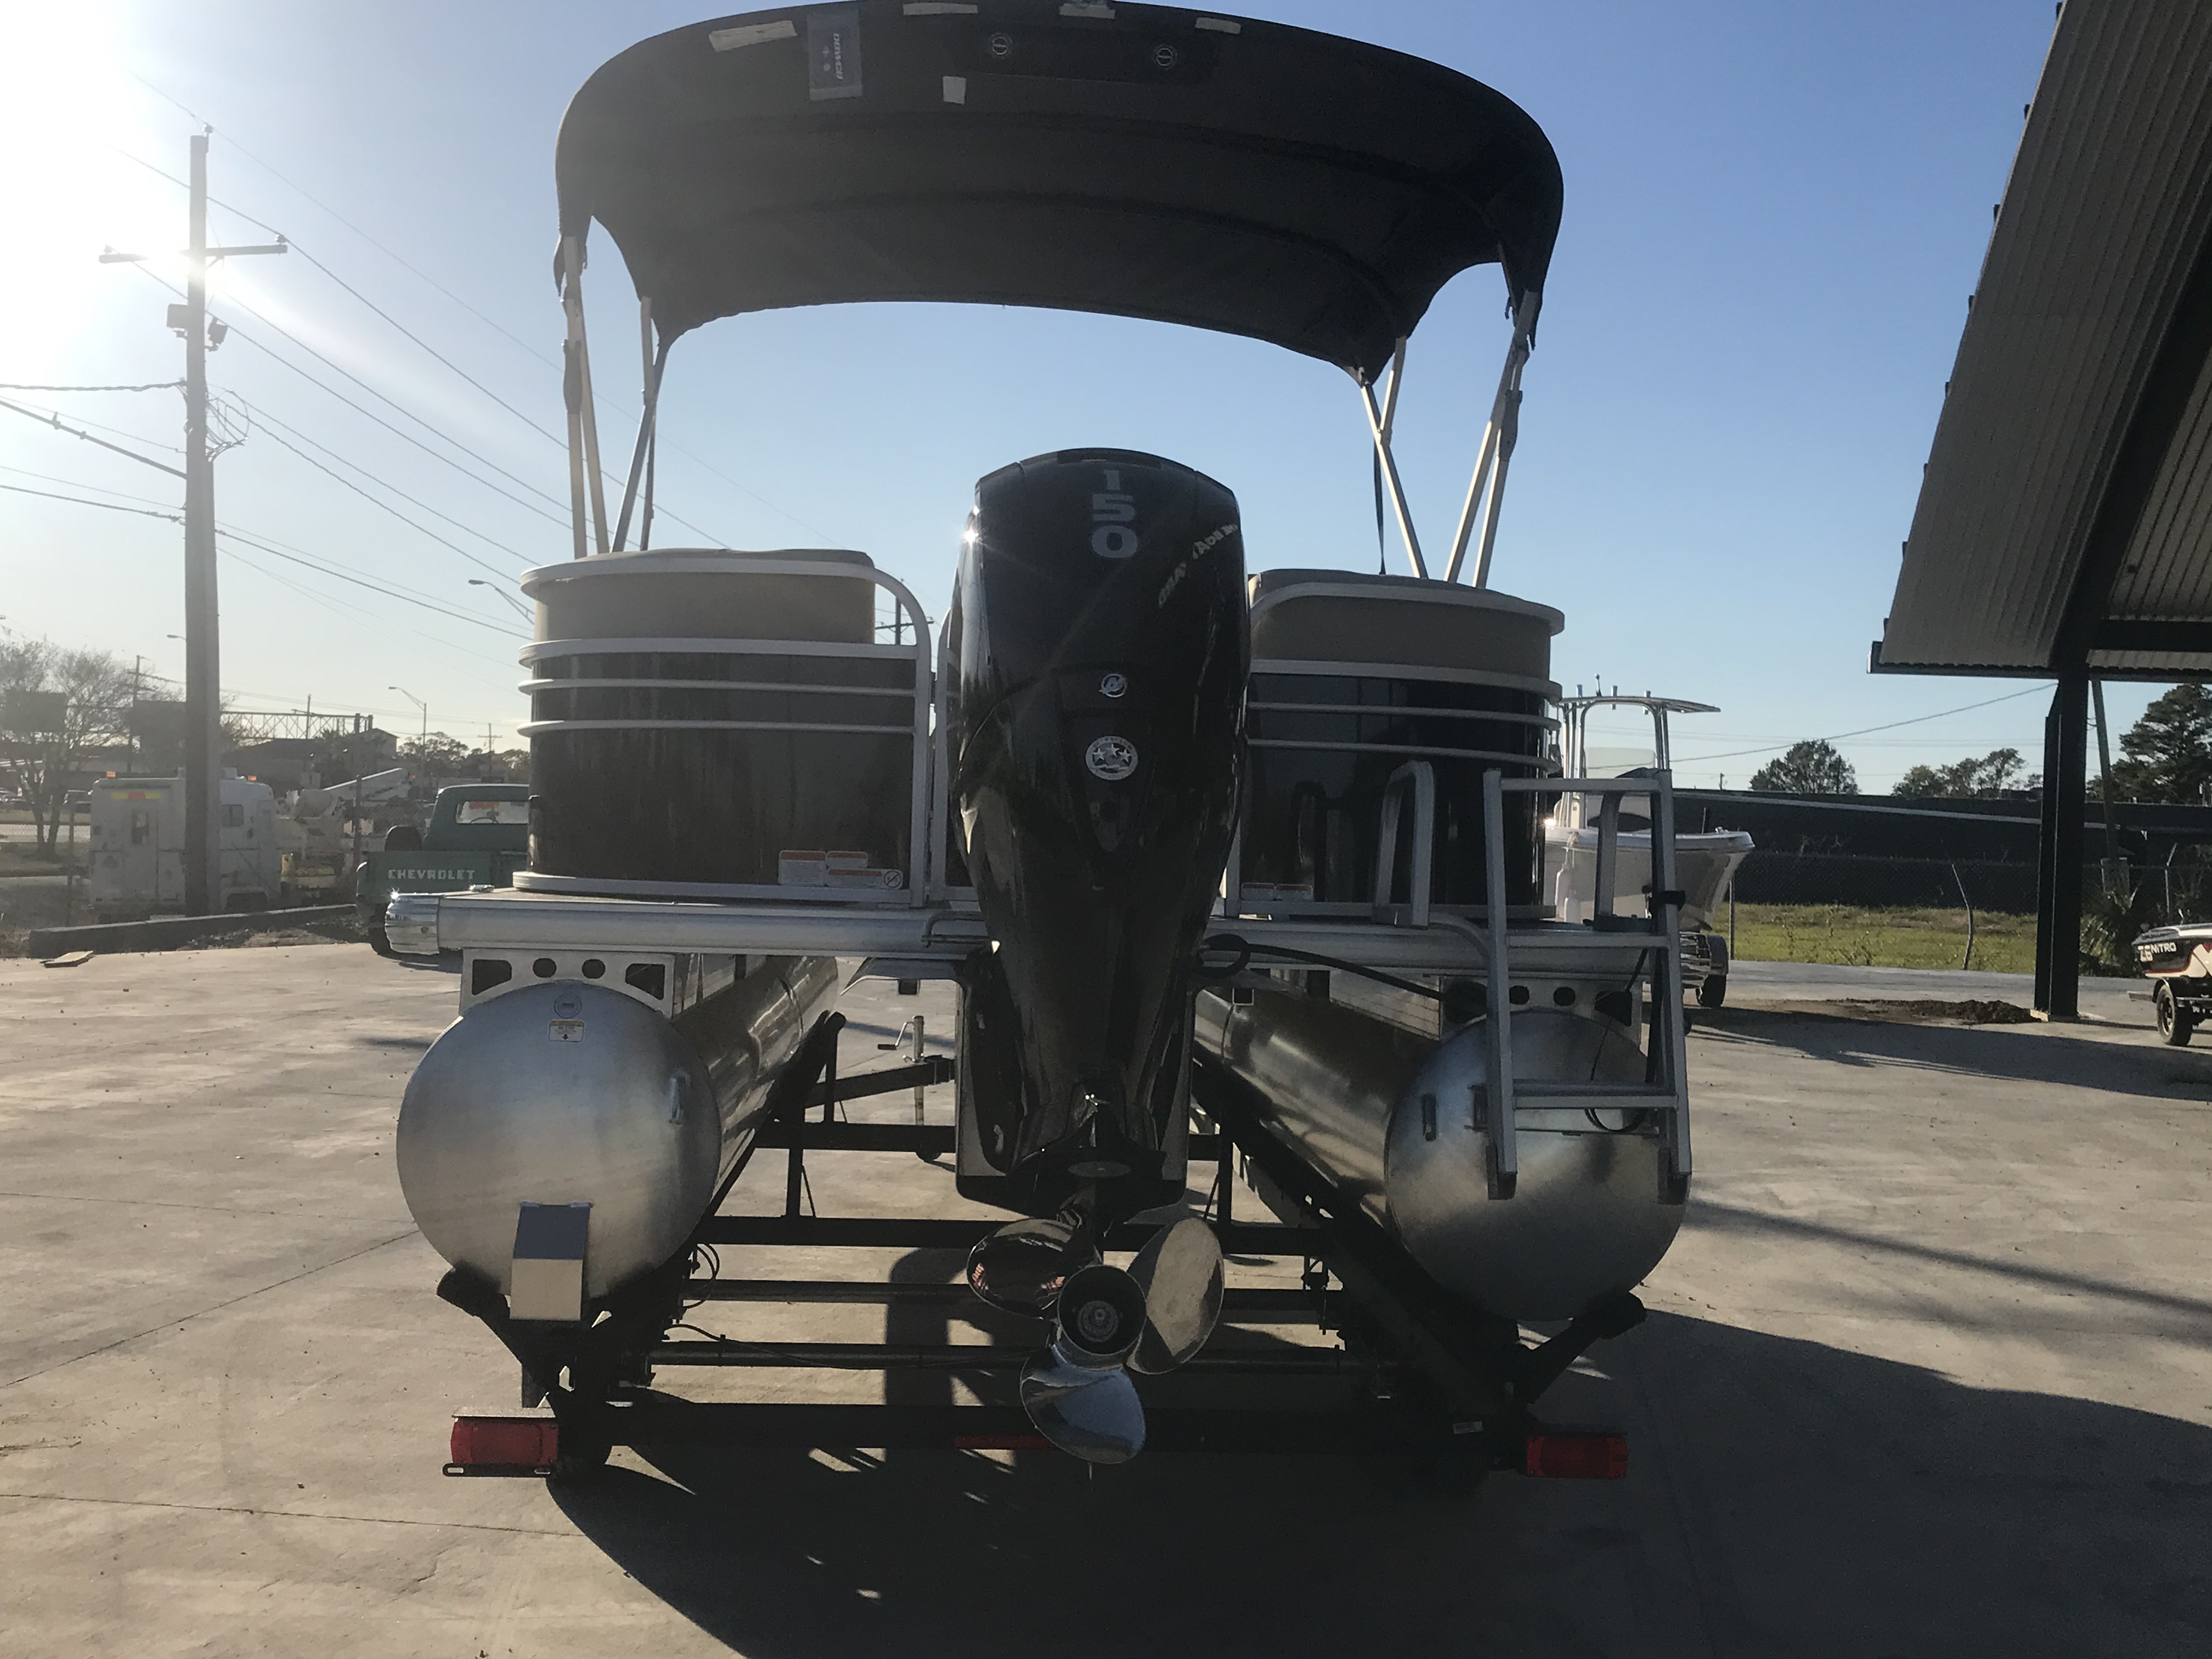 2022 Sun Tracker boat for sale, model of the boat is 22 Party Barge DLX & Image # 14 of 15